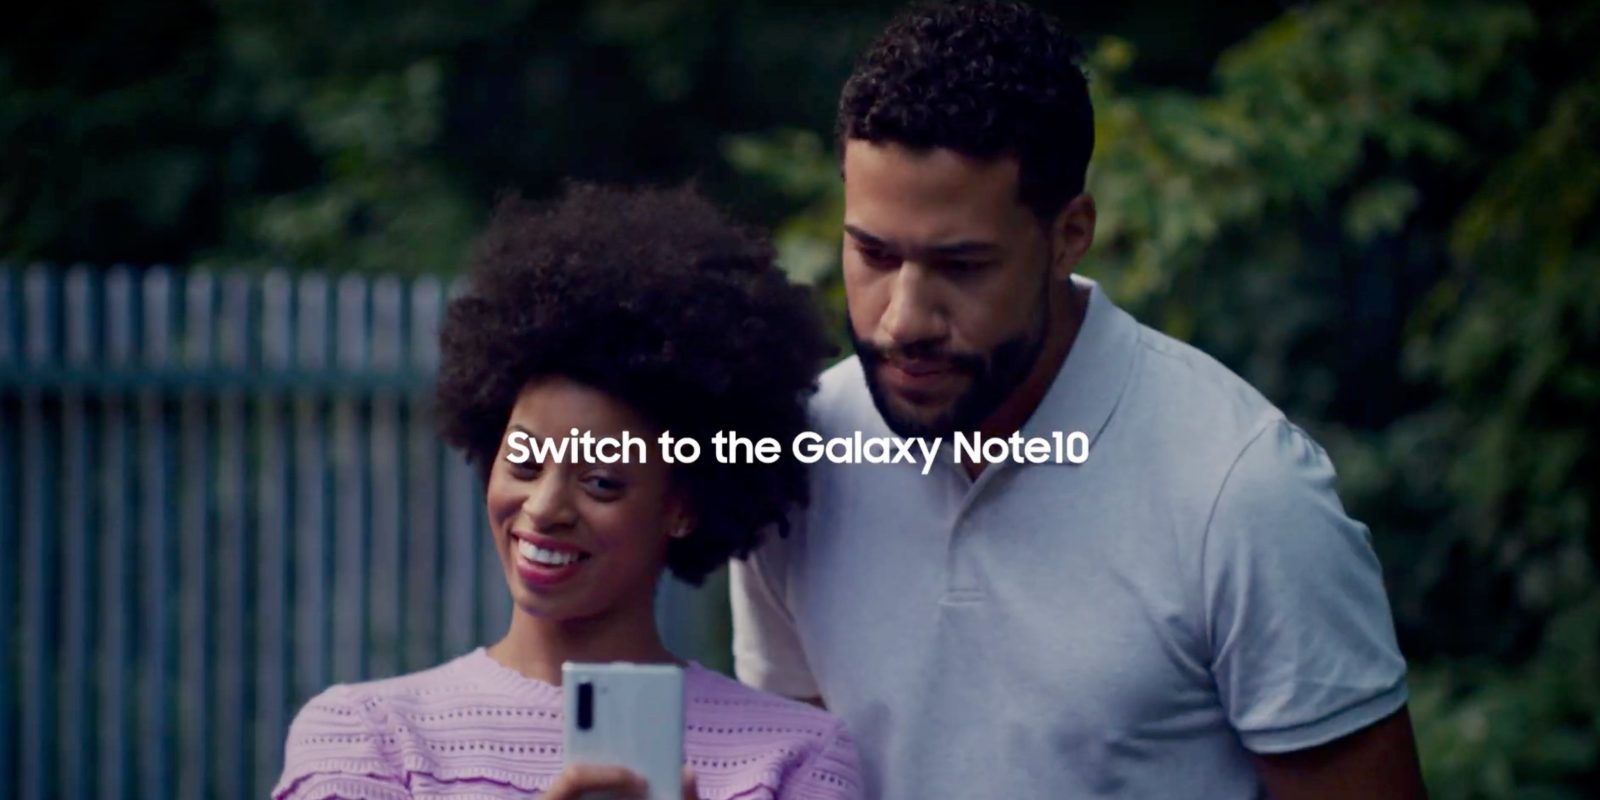 Samsung Galaxy ad uses missing iPhone 11 camera feature as bait to switch